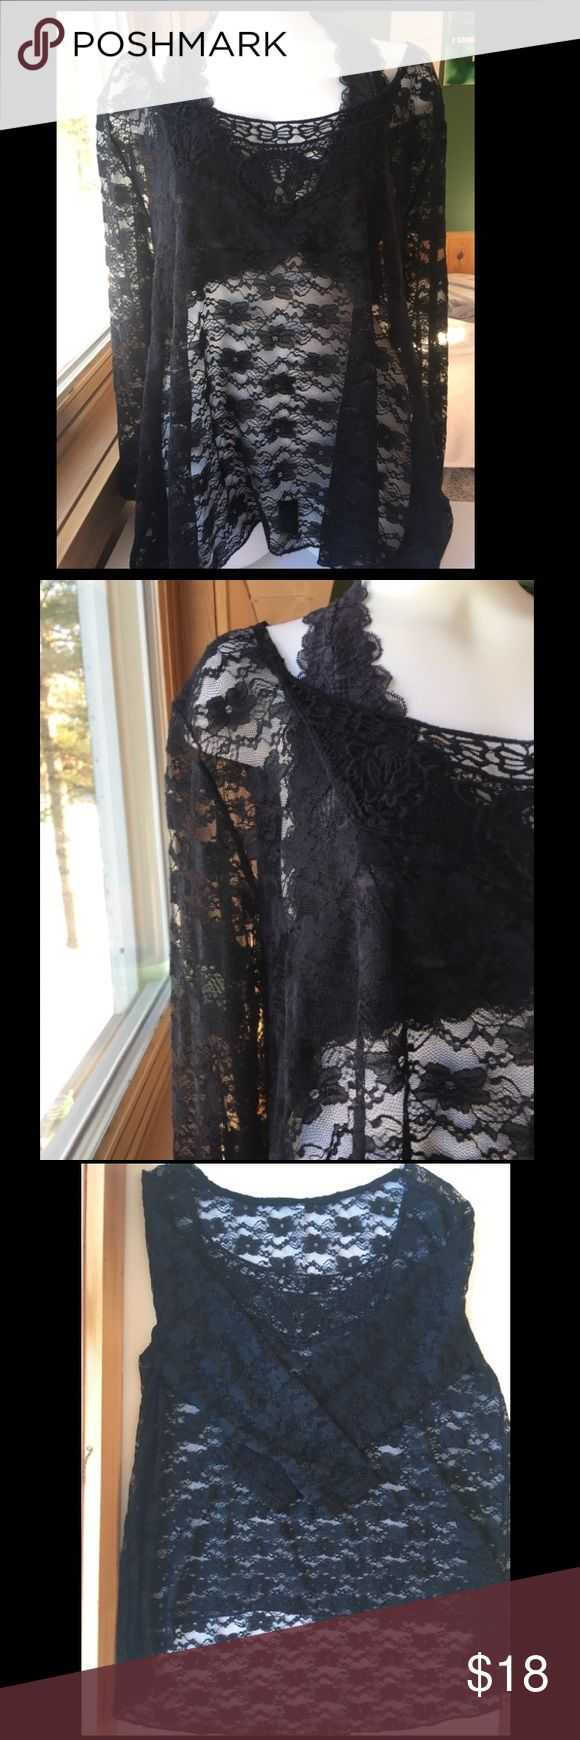 🖤Lovely lace swim suit cover up🖤 Black lace swimsuit coverup has three quarter length sleeves and scoop neck. Lace is longer in the back then in the front. Looks beautiful over a swim top, or can be worn as lingerie over a bra. There is no tag on this coverup but looks brand new! I would say it fits like a large. Swim Coverups